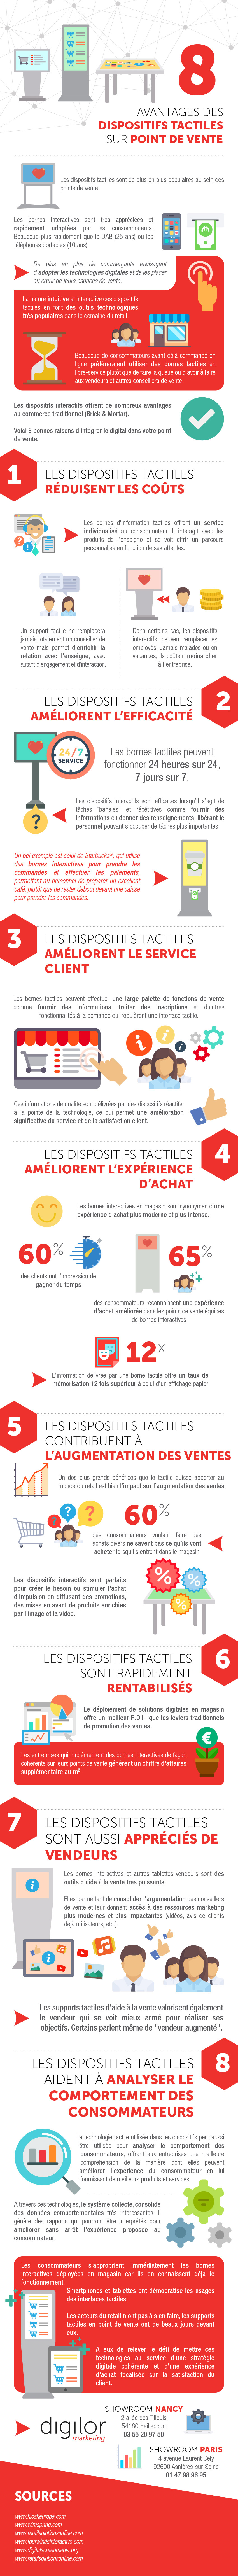 Infographie Digilor avantages dispositifs interactifs